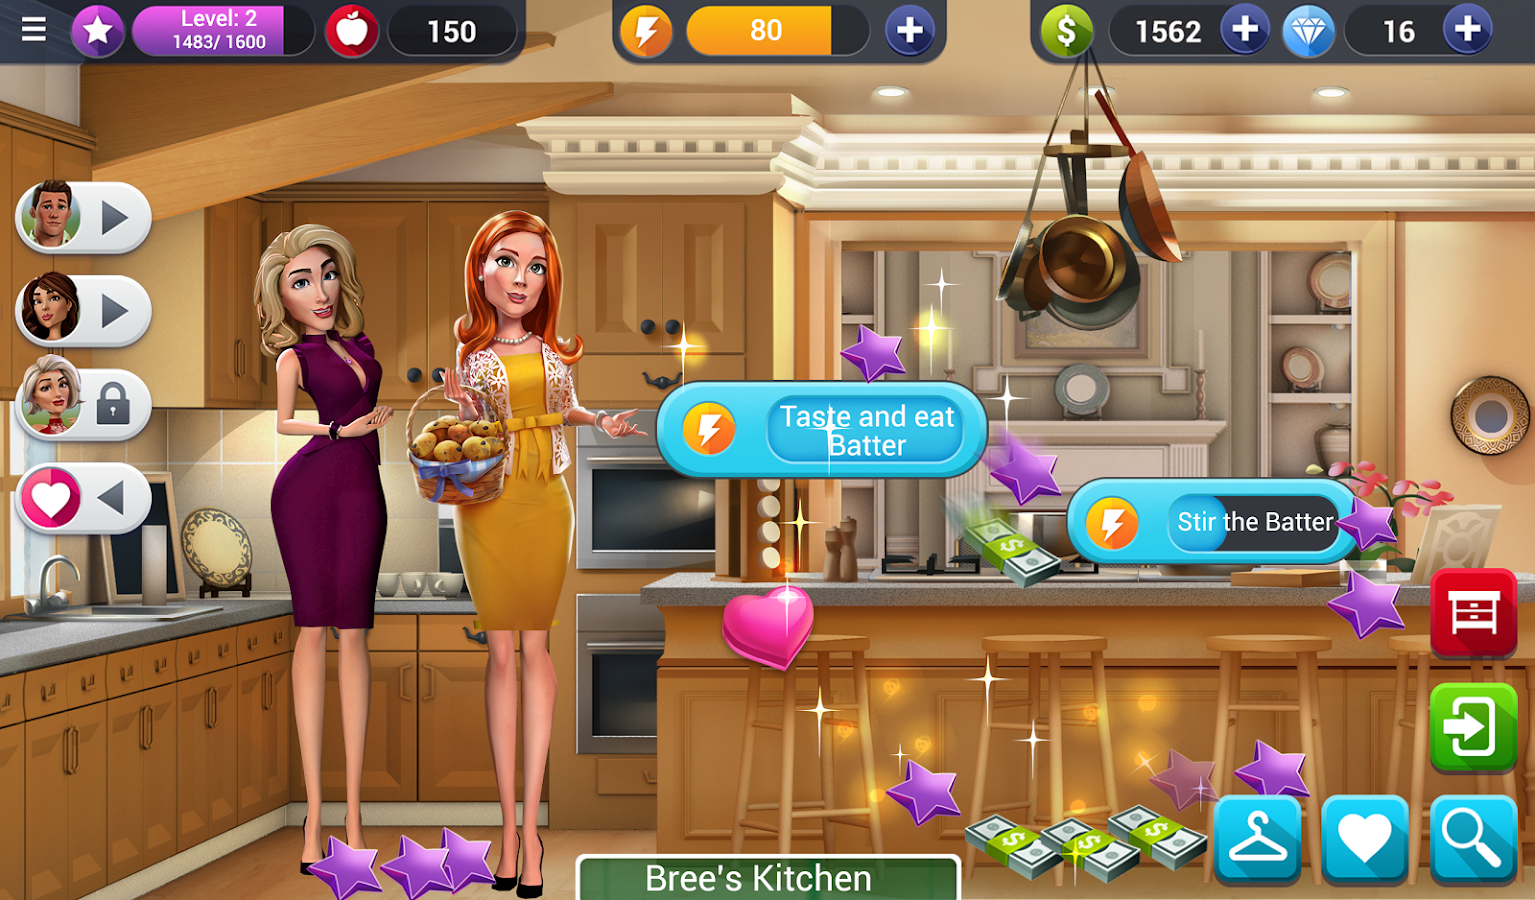 Desperate Housewives: The Game Screenshot 17